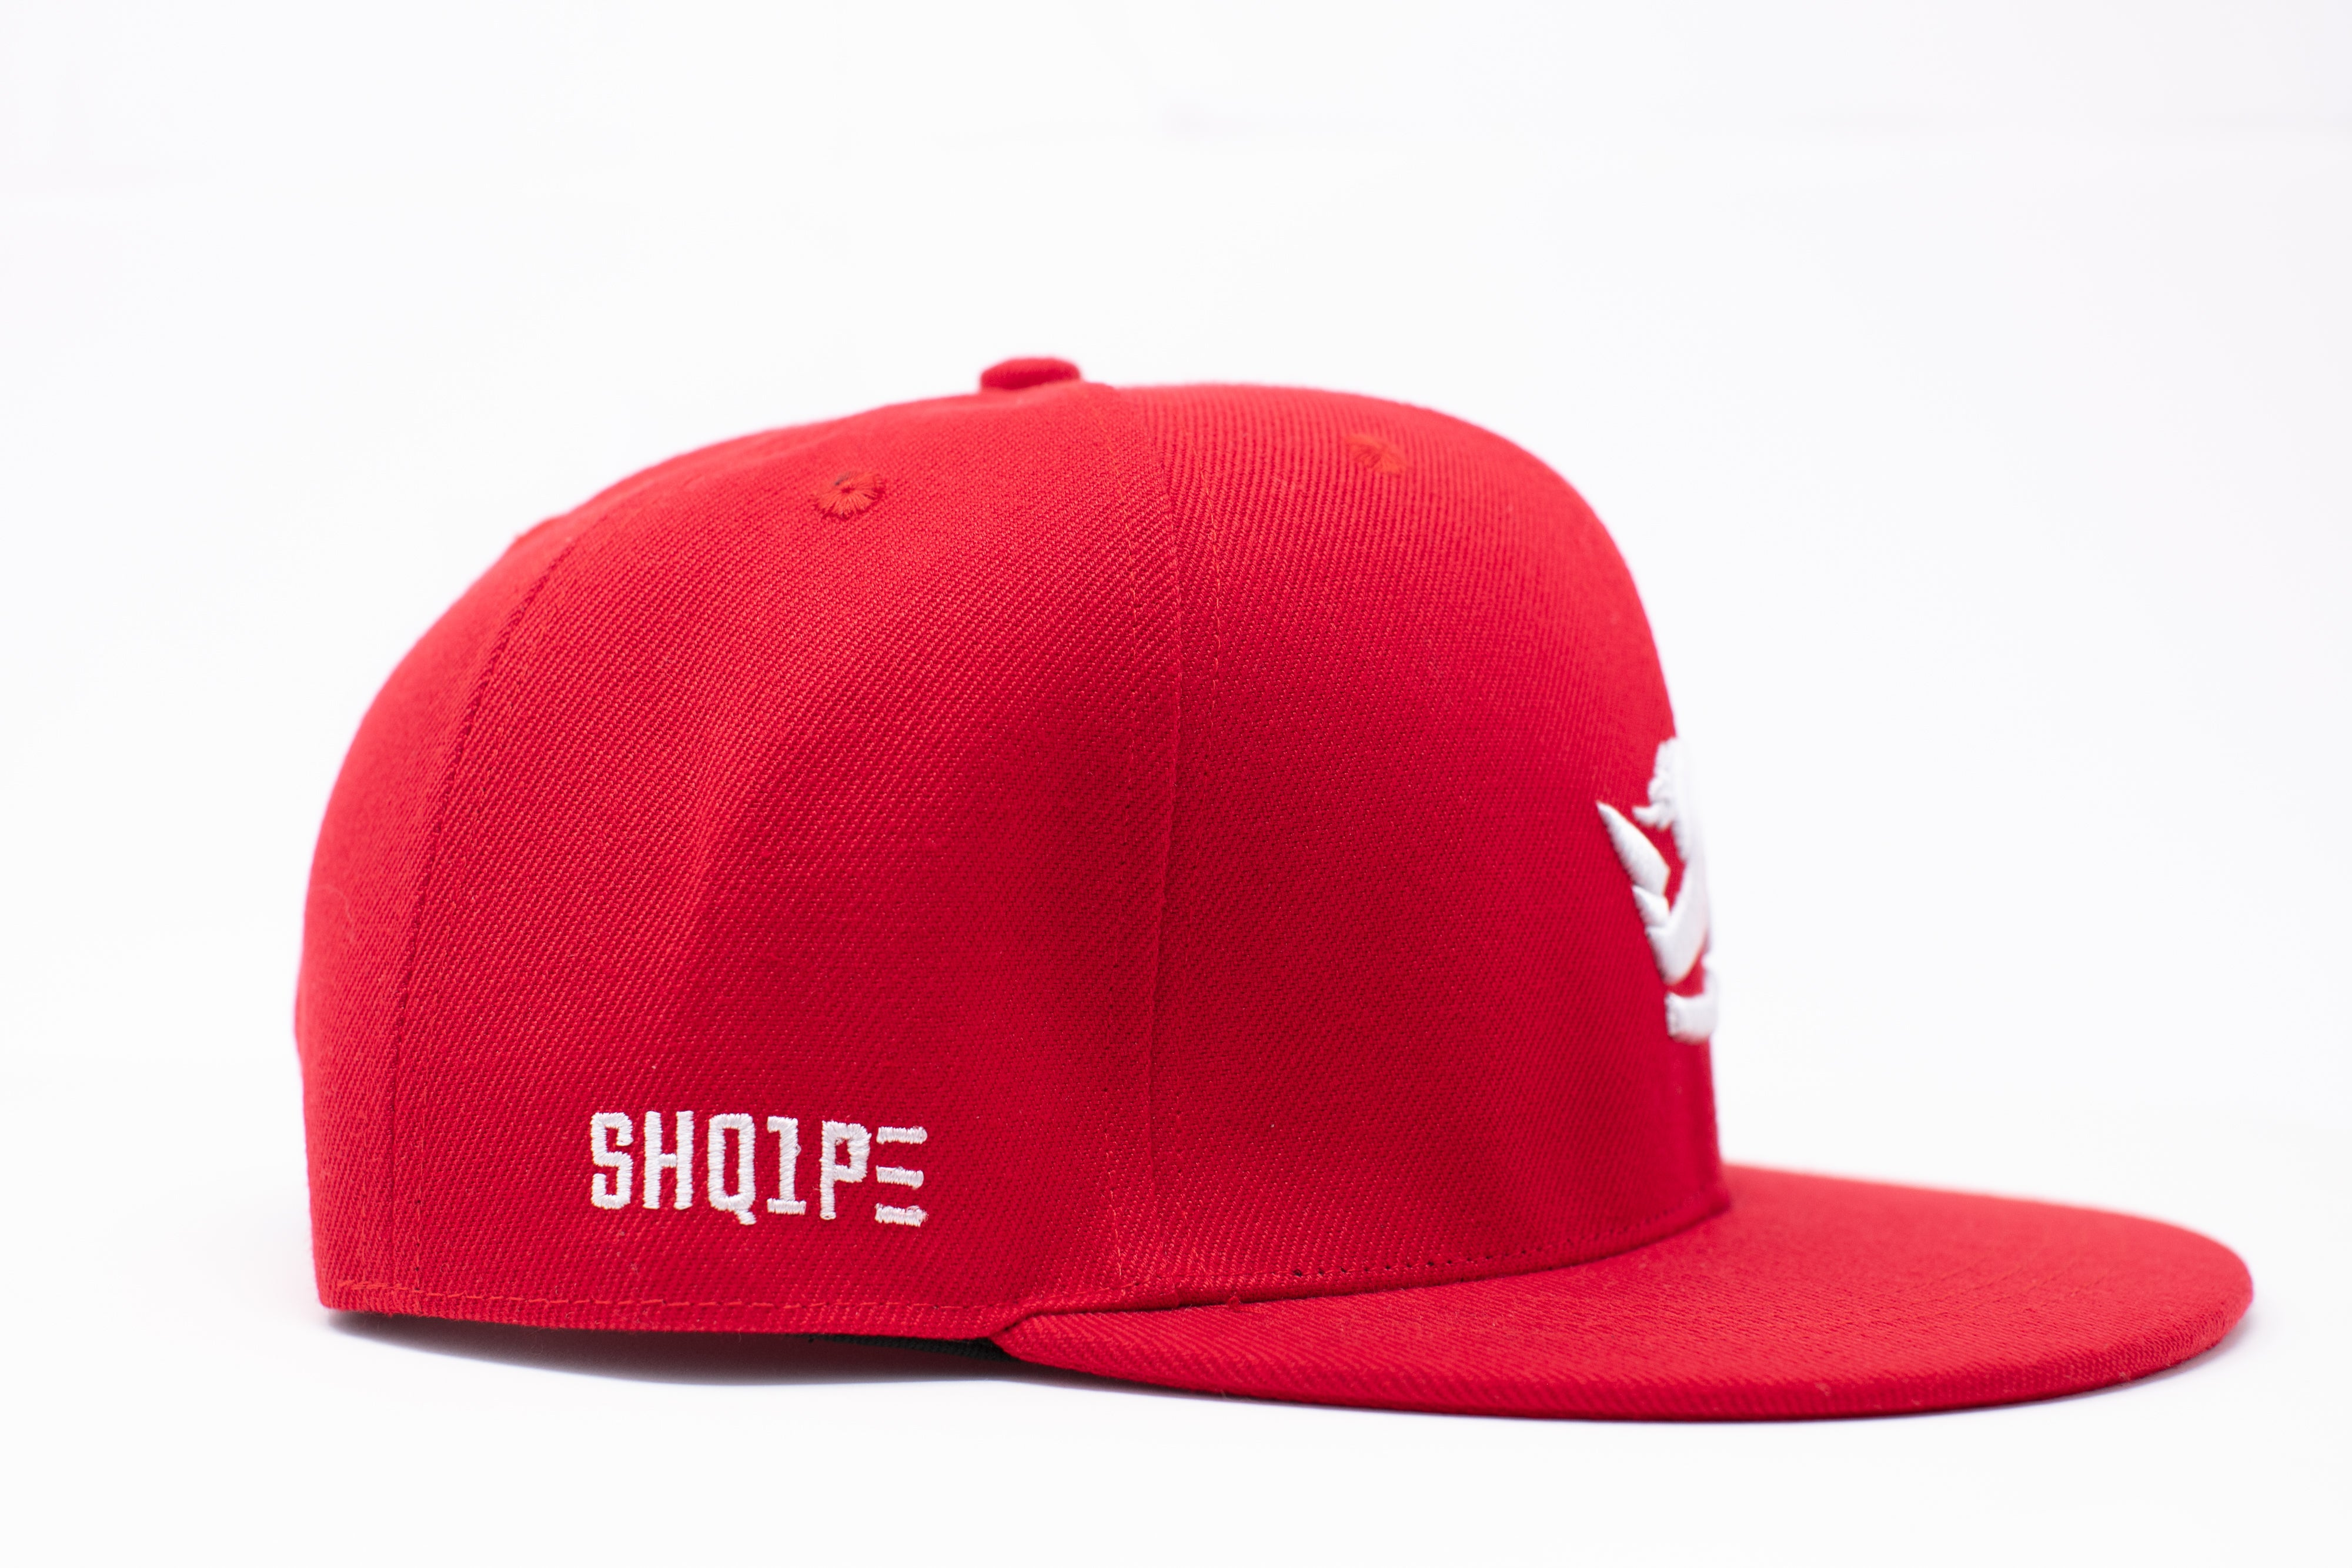 1st Edition Shq1pe Snapback Red/White